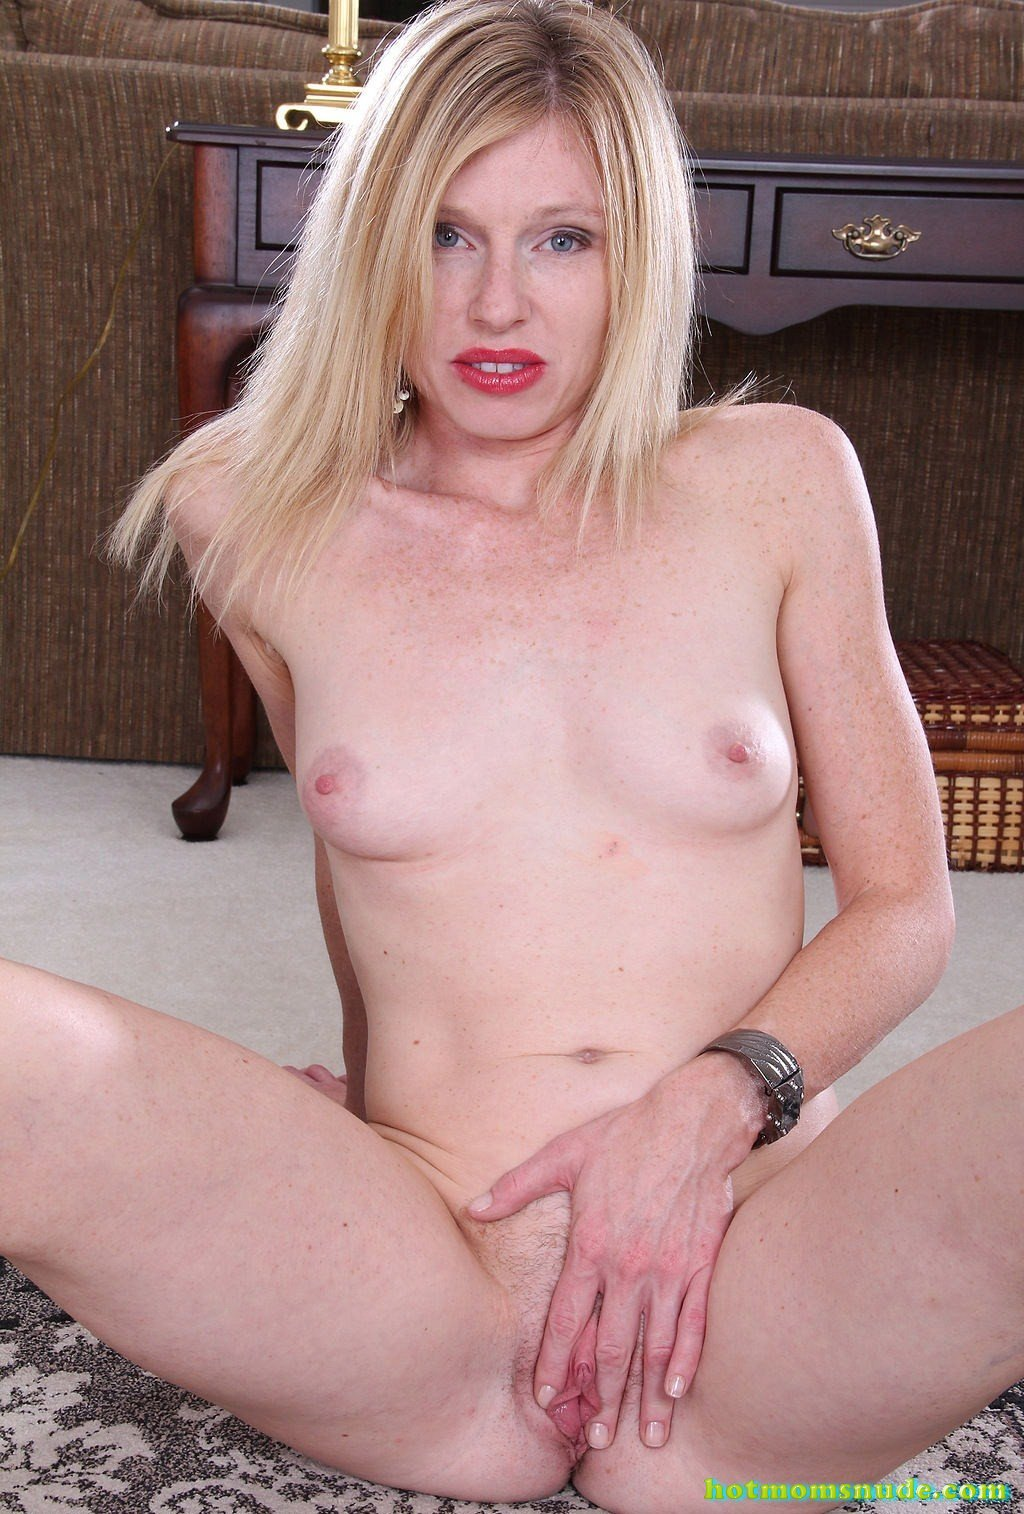 Tommi,Lacey nude pics and biography